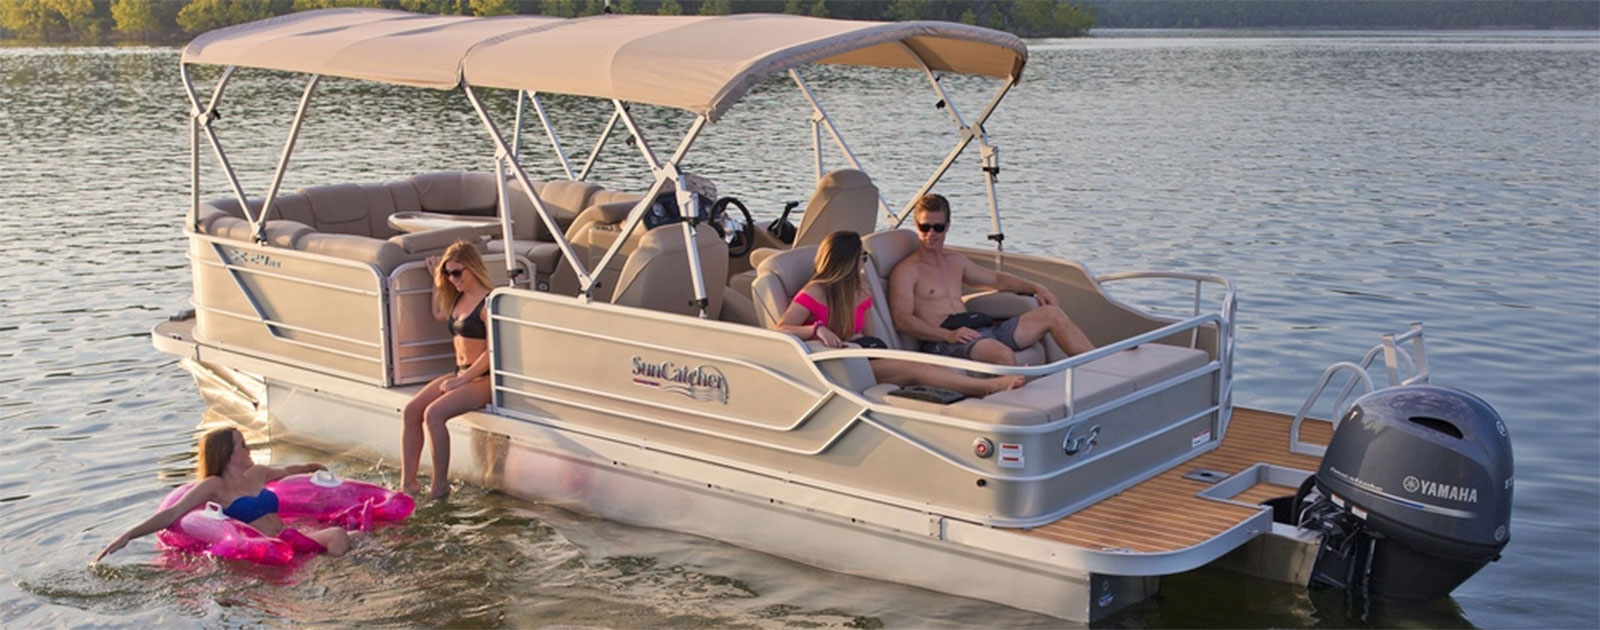 Pontoon Boat Sales and Service in Boise, Idaho